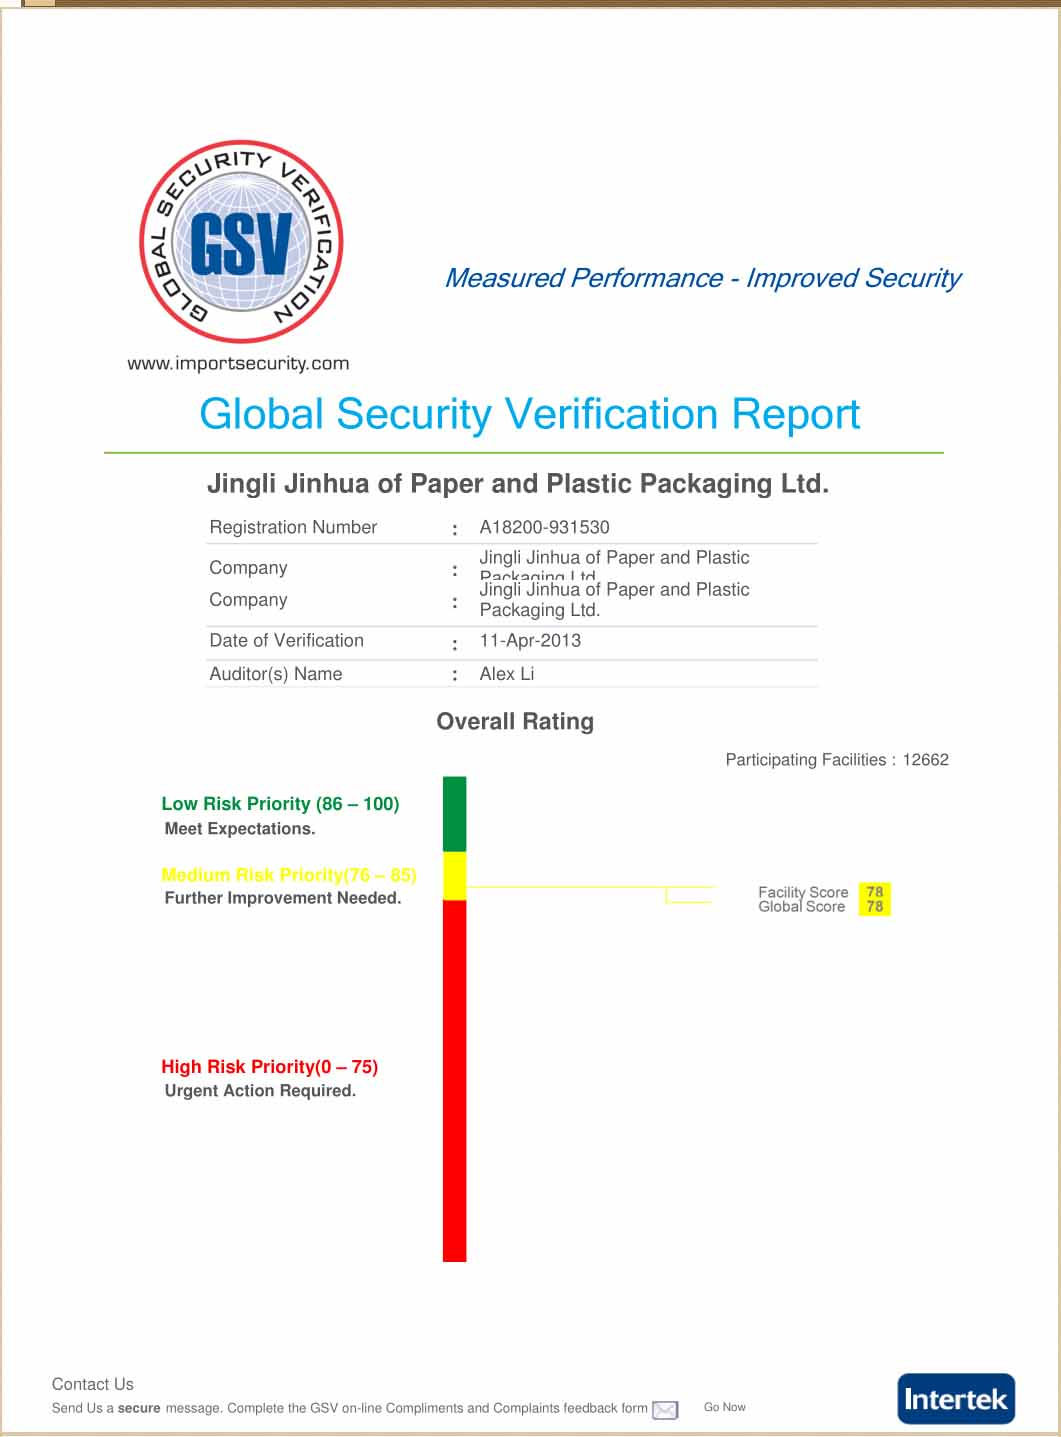 Global Security Verification Report